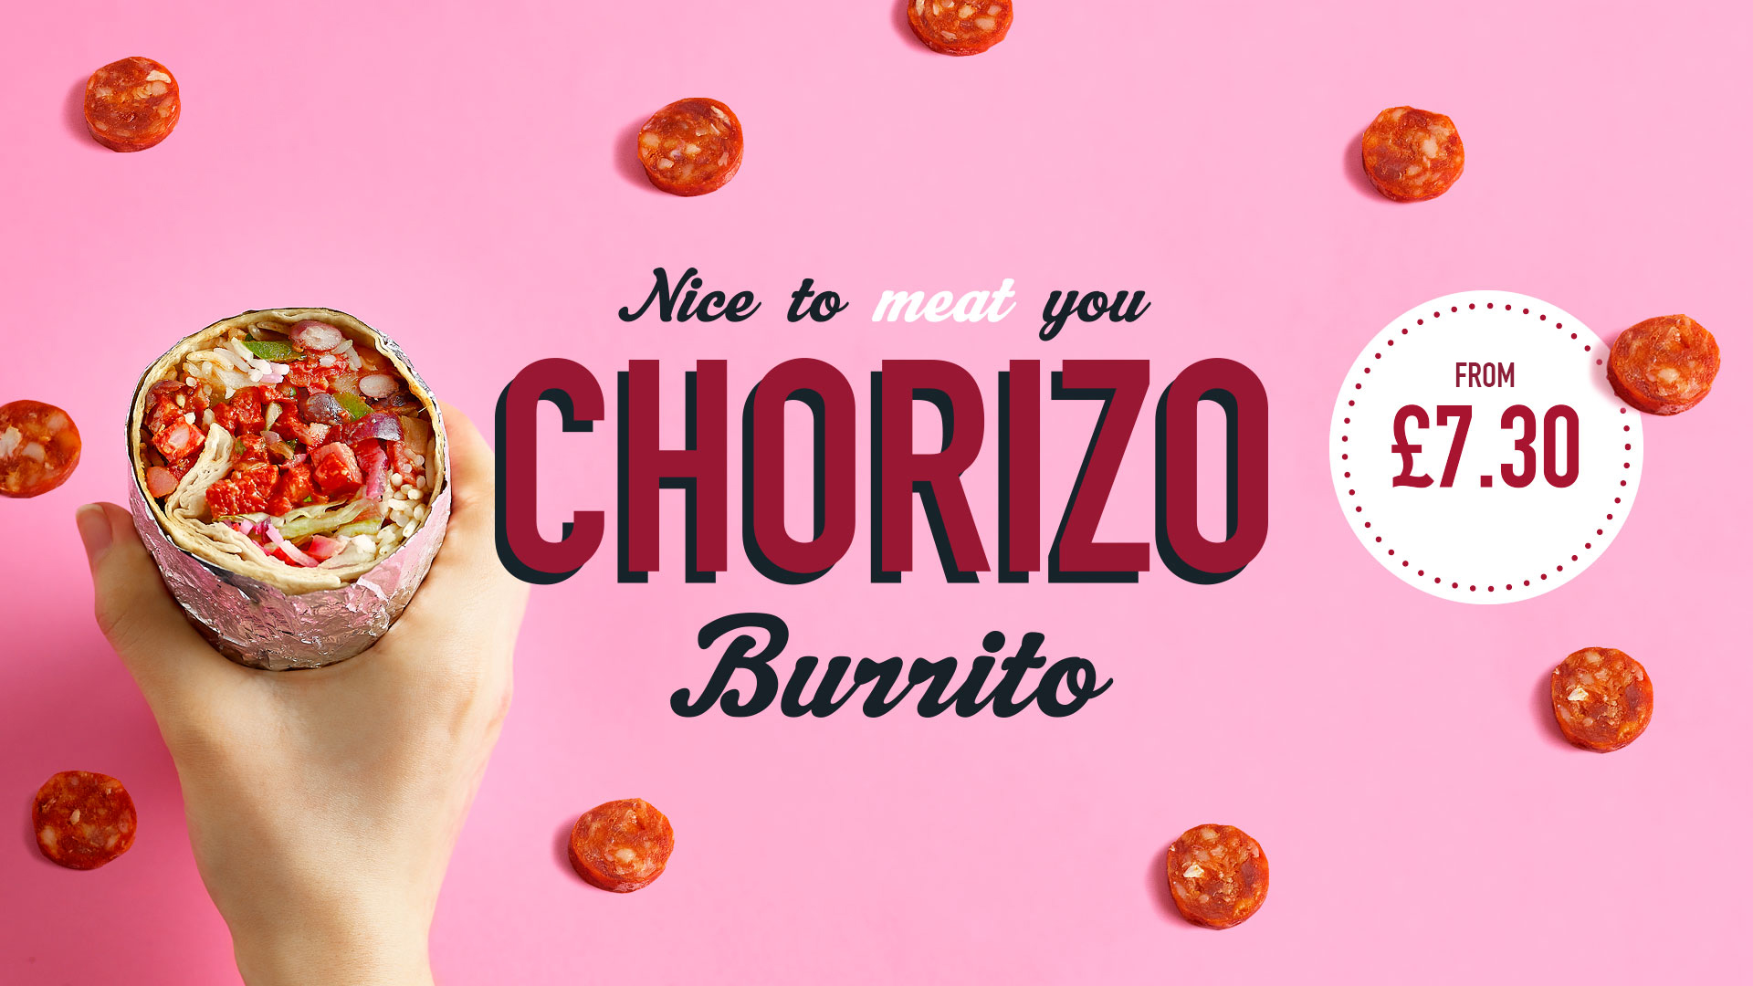 Digital Marketing Campaign for Bar Burrito